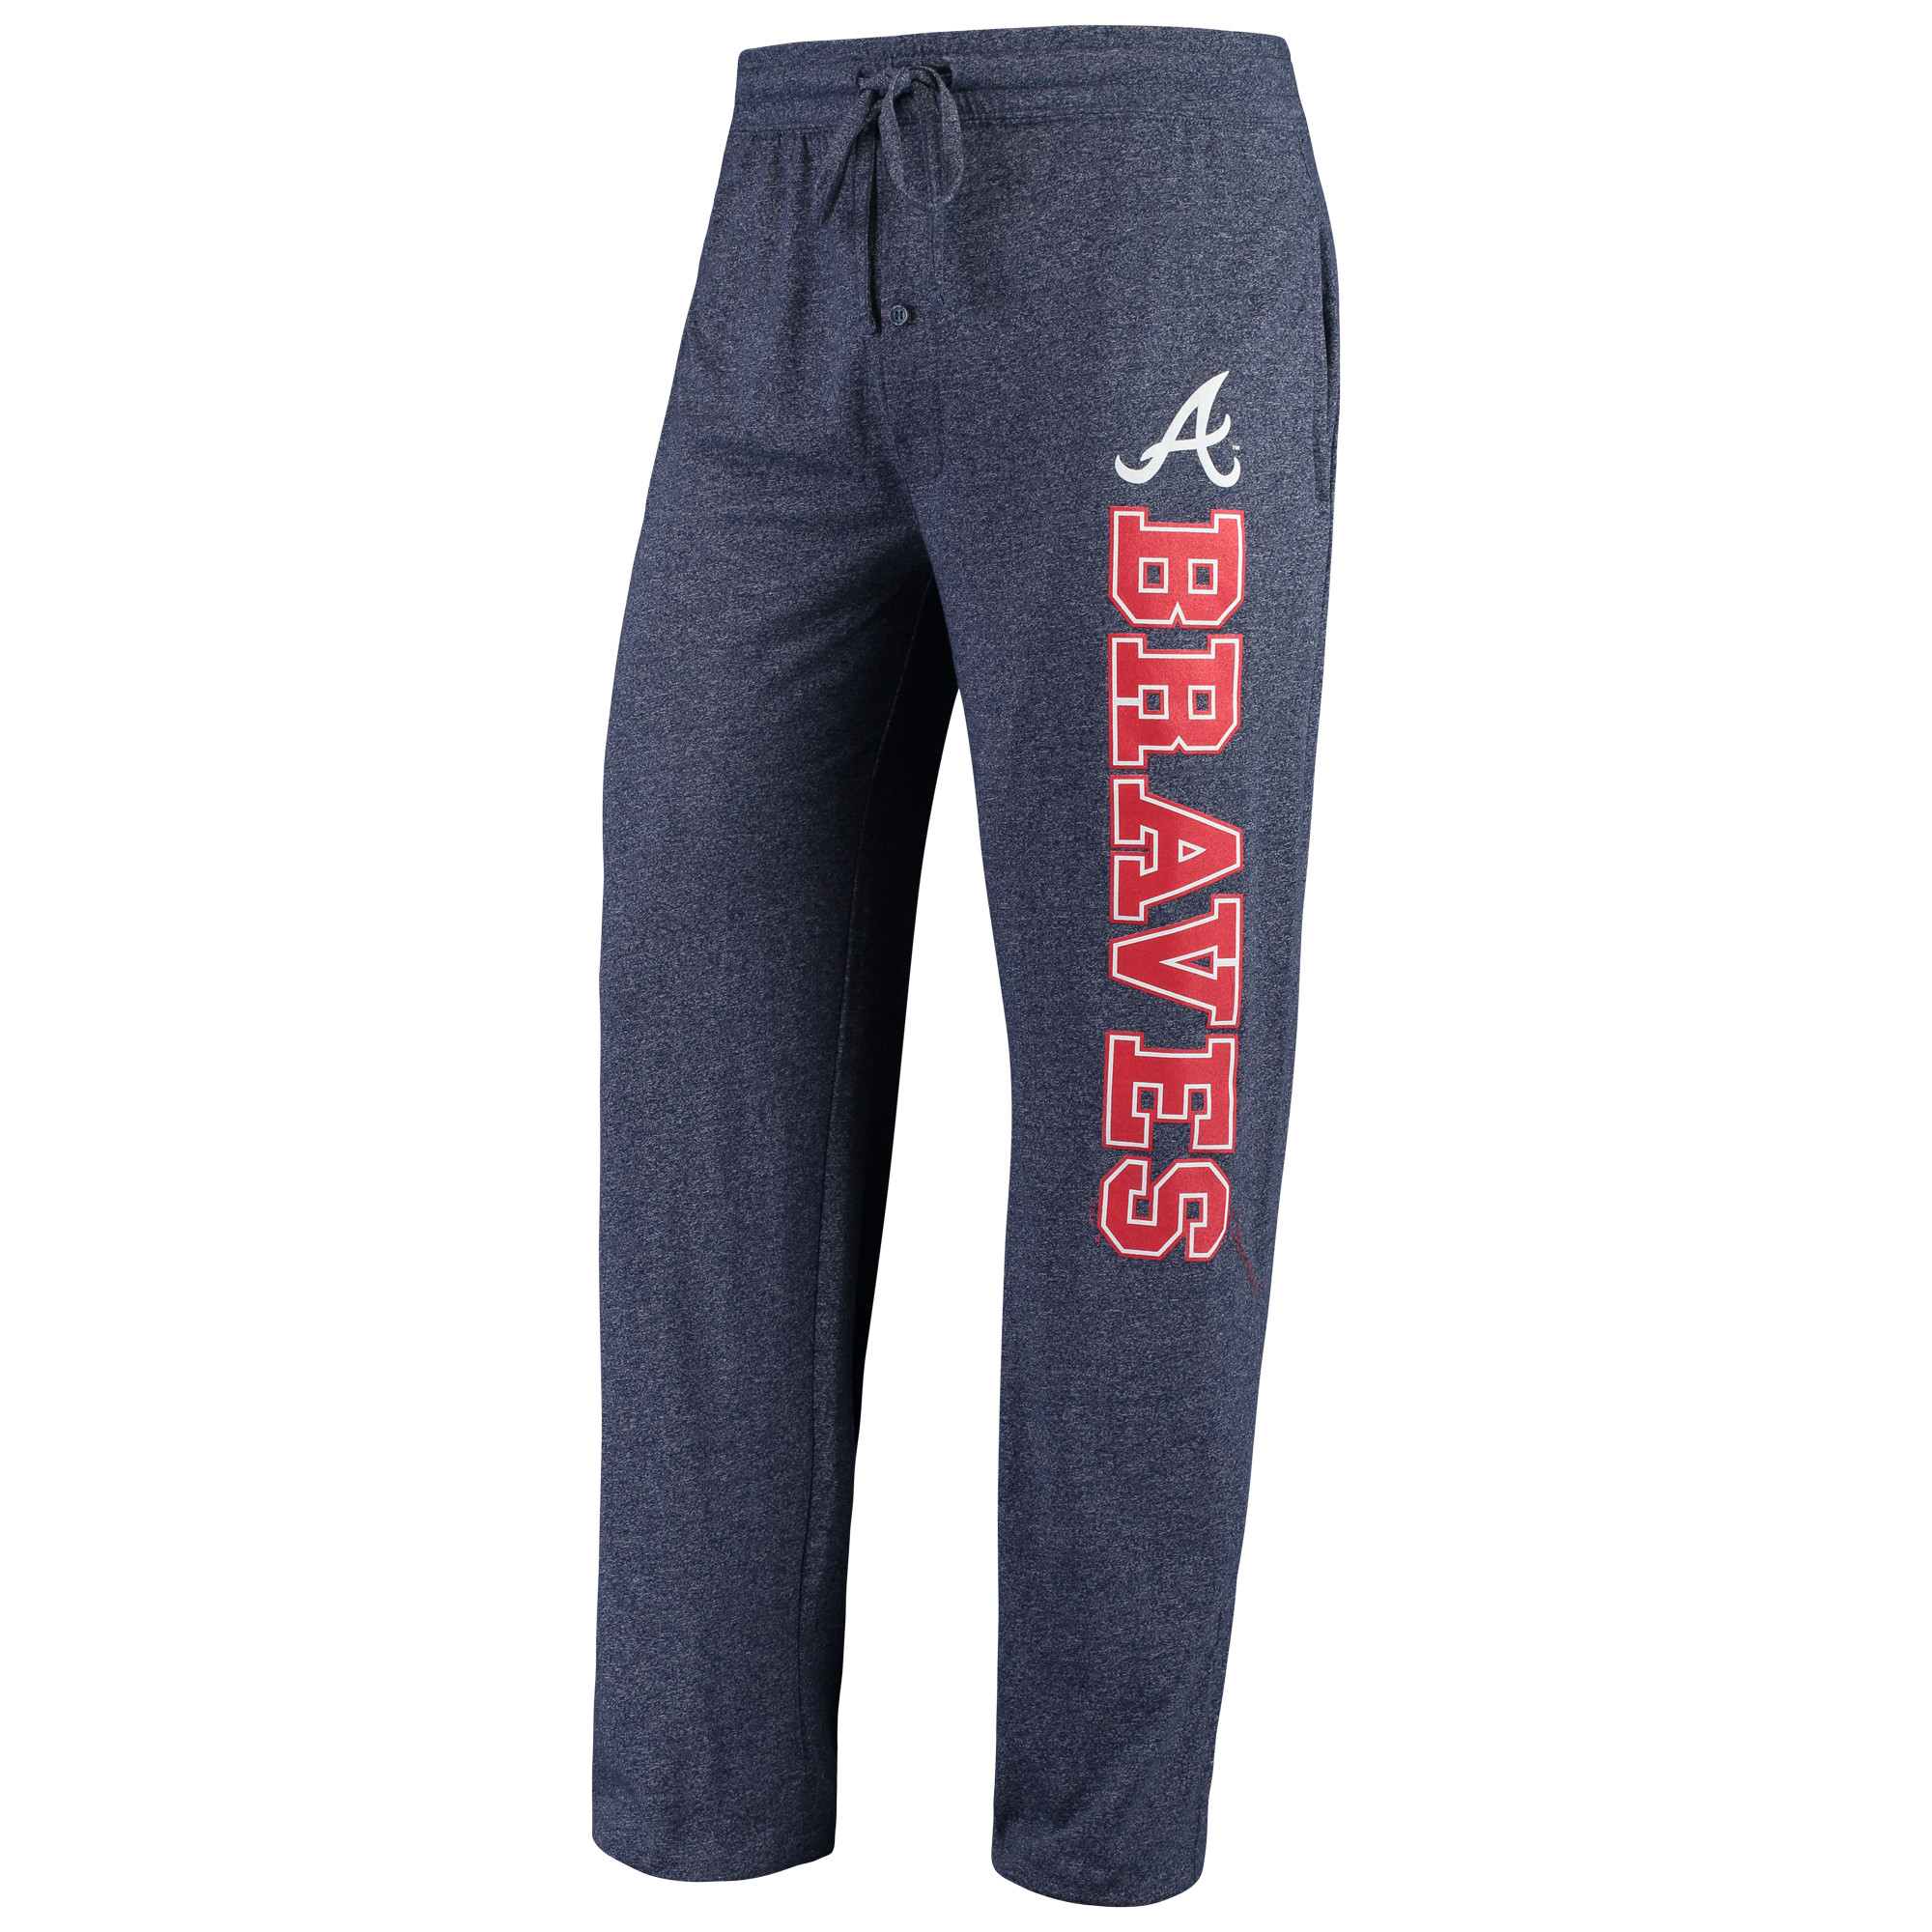 Atlanta Braves Concepts Sport Quest Pants - Heathered Navy